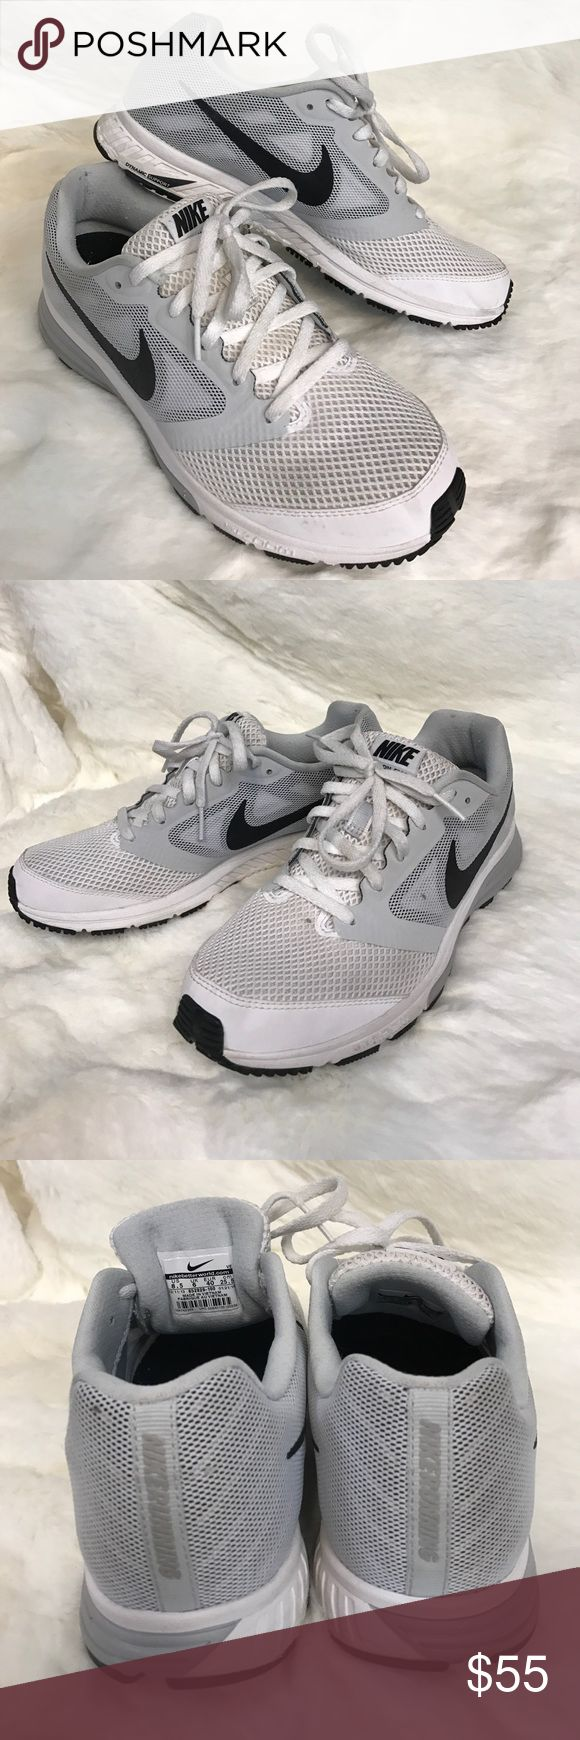 NIKE SNEAKERS B21 White and light grey NIKE! Best sport brand alive! Pre-loved with minor imperfections! Nike Shoes Sneakers